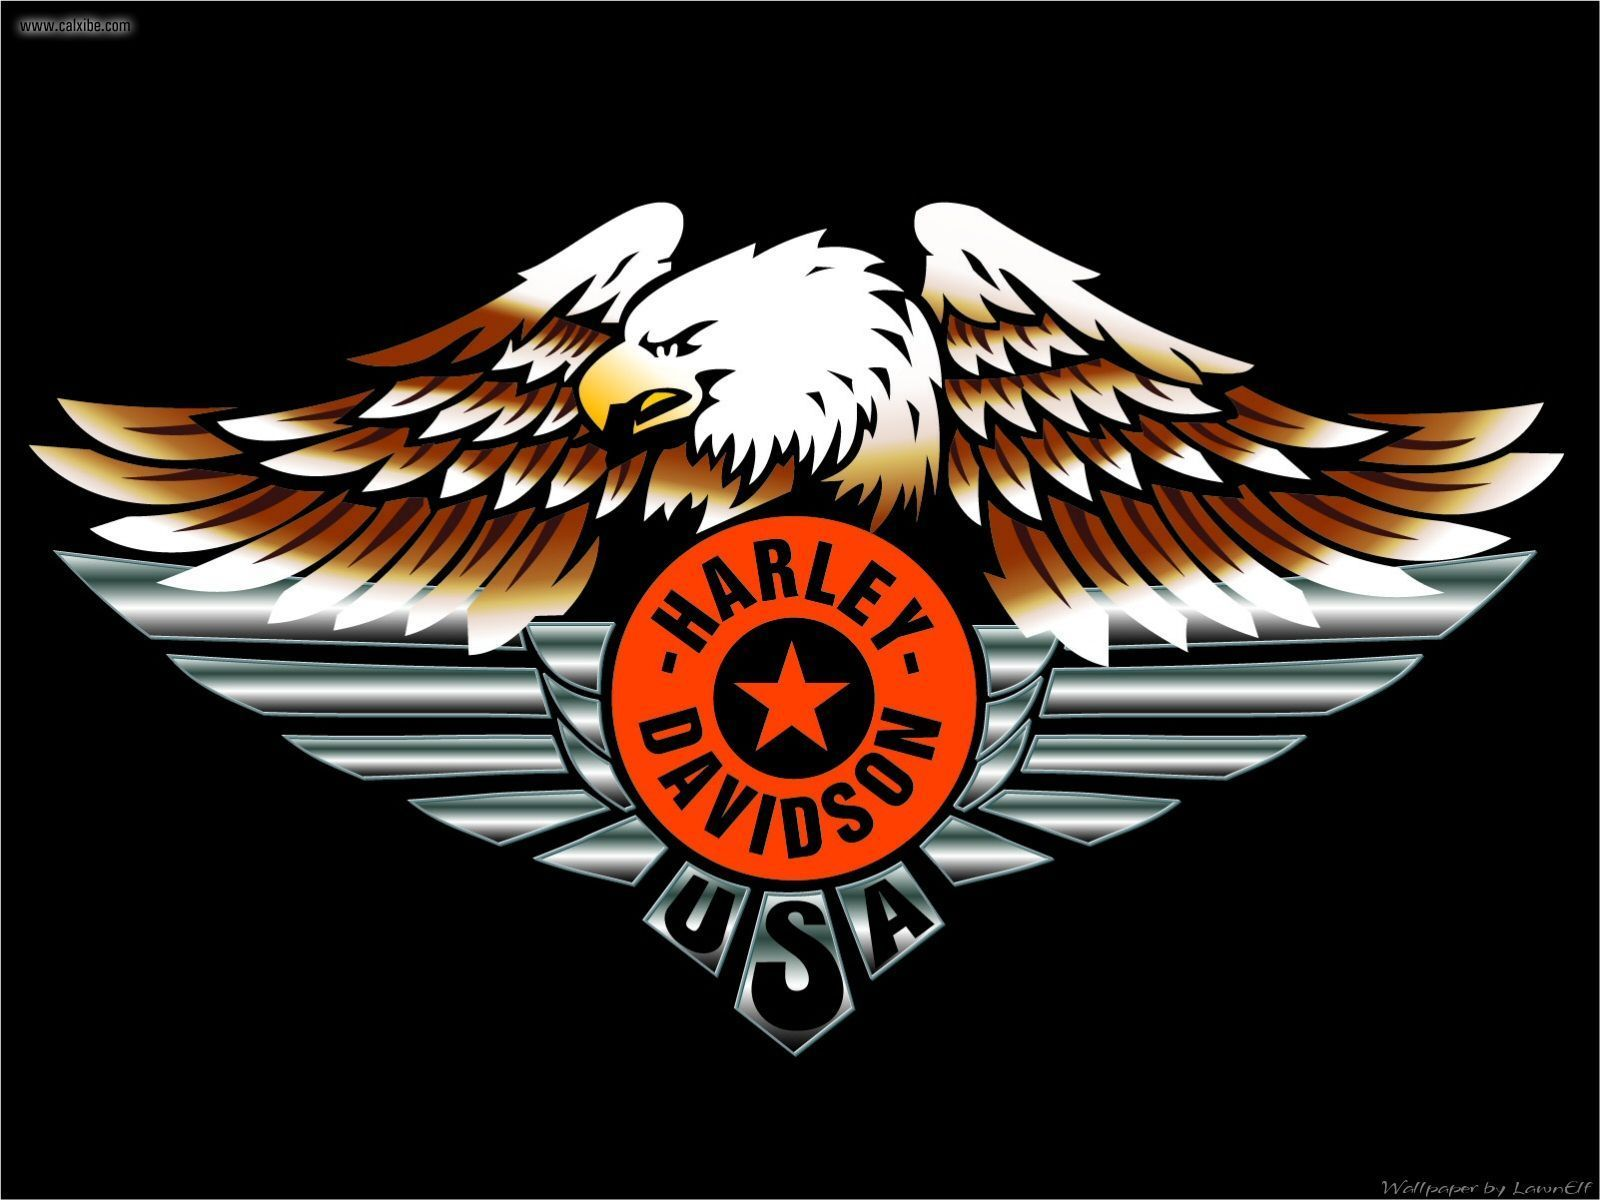 Harley Davidson Eagle Wallpaper 7500 Hd Wallpapers in Bikes   Imagesci 1600x1200